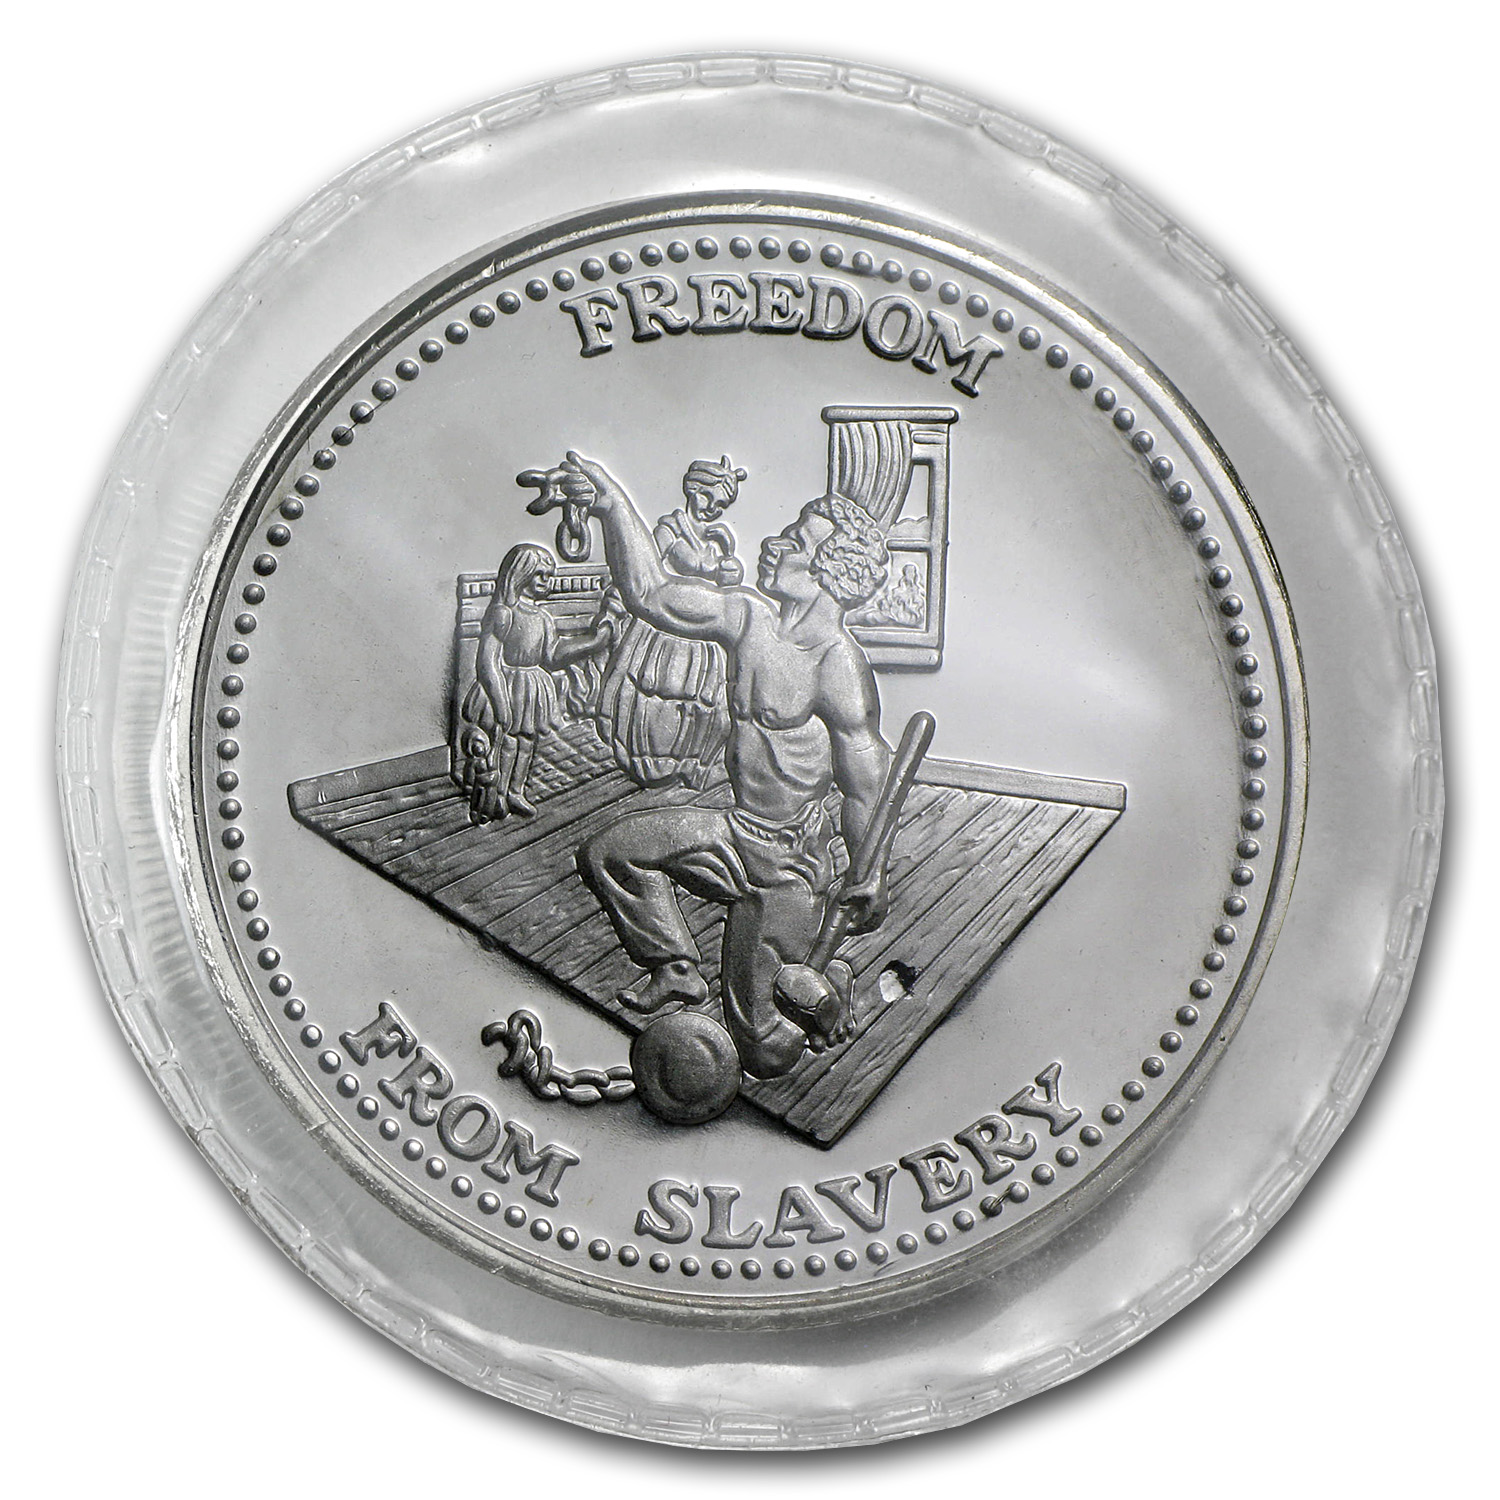 1 oz Silver Rnd - Johnson Matthey (Sealed, Freedom from Slavery)